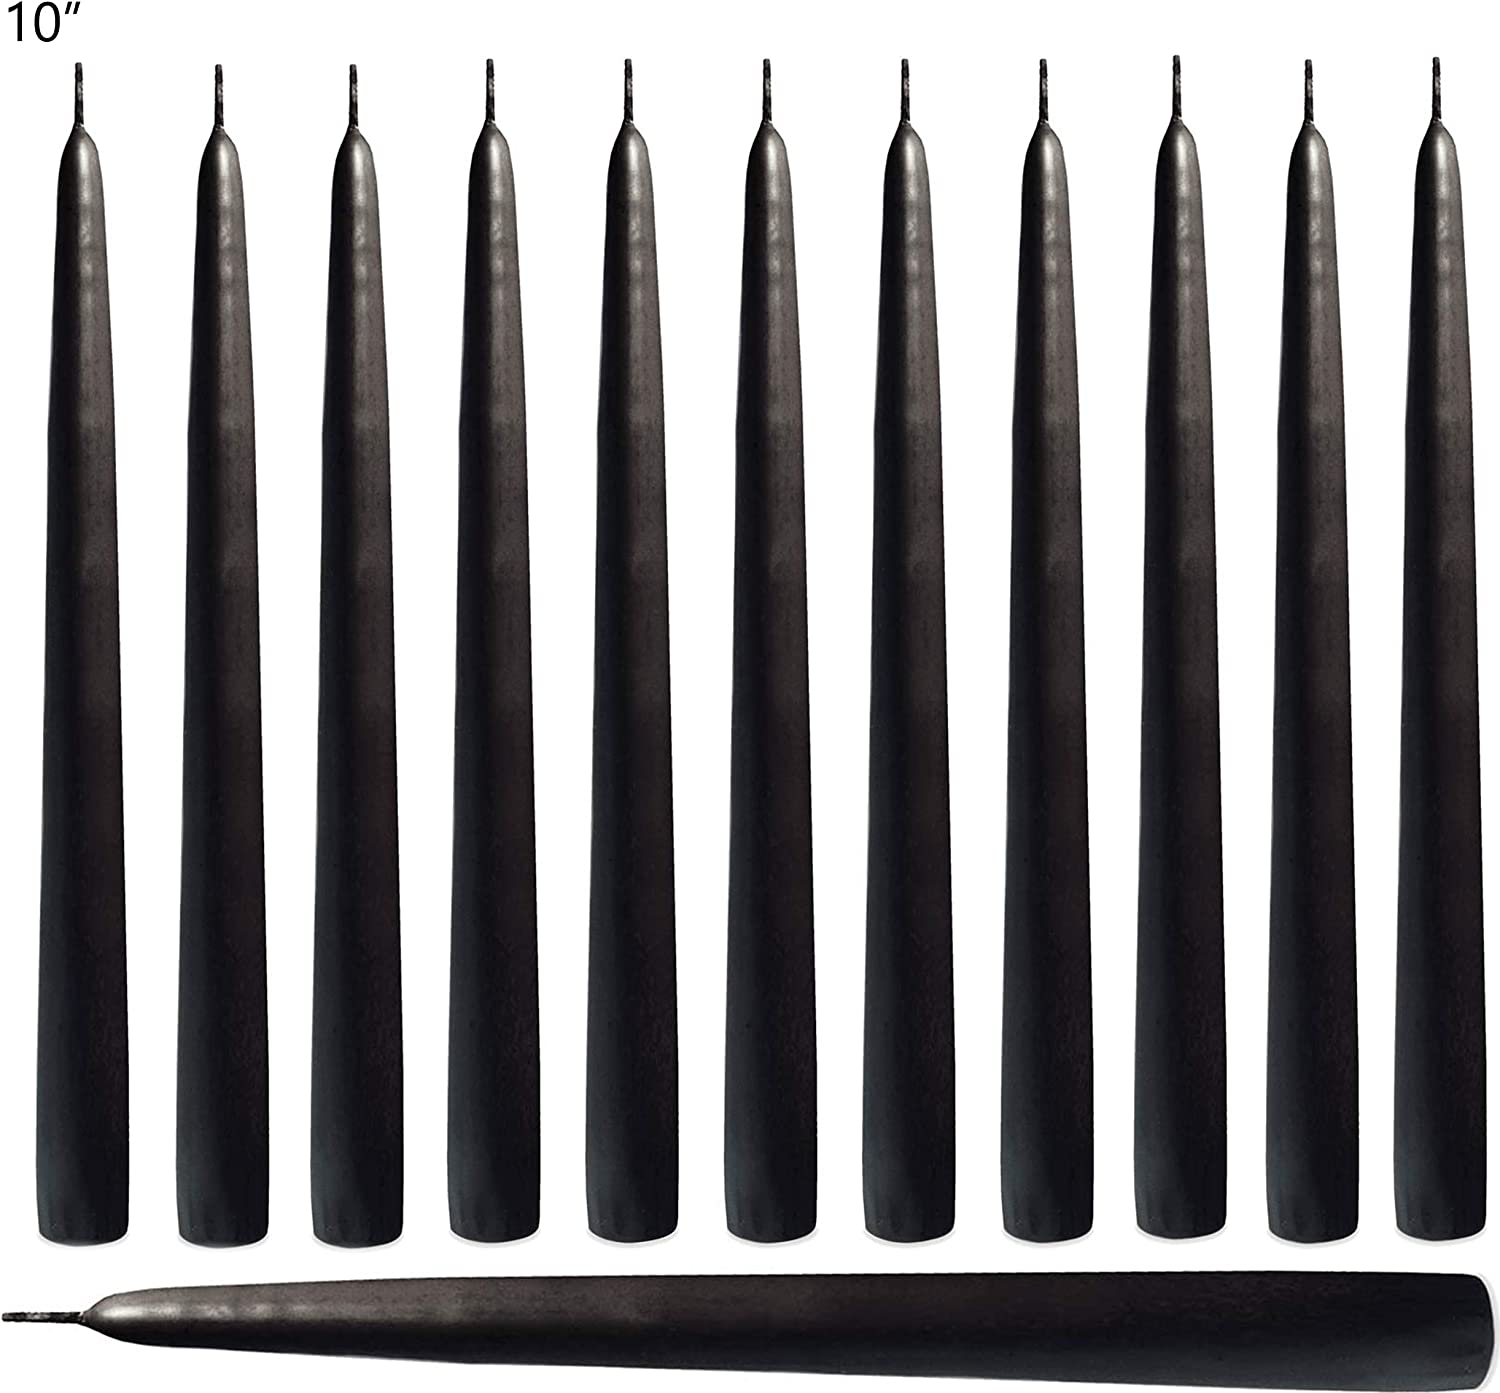 Smokeless Unscented 10 inch Tall Candlesticks Great for Table Centerpiece Decoration Gift Set of 14 Ahyiyou Black Taper Candles